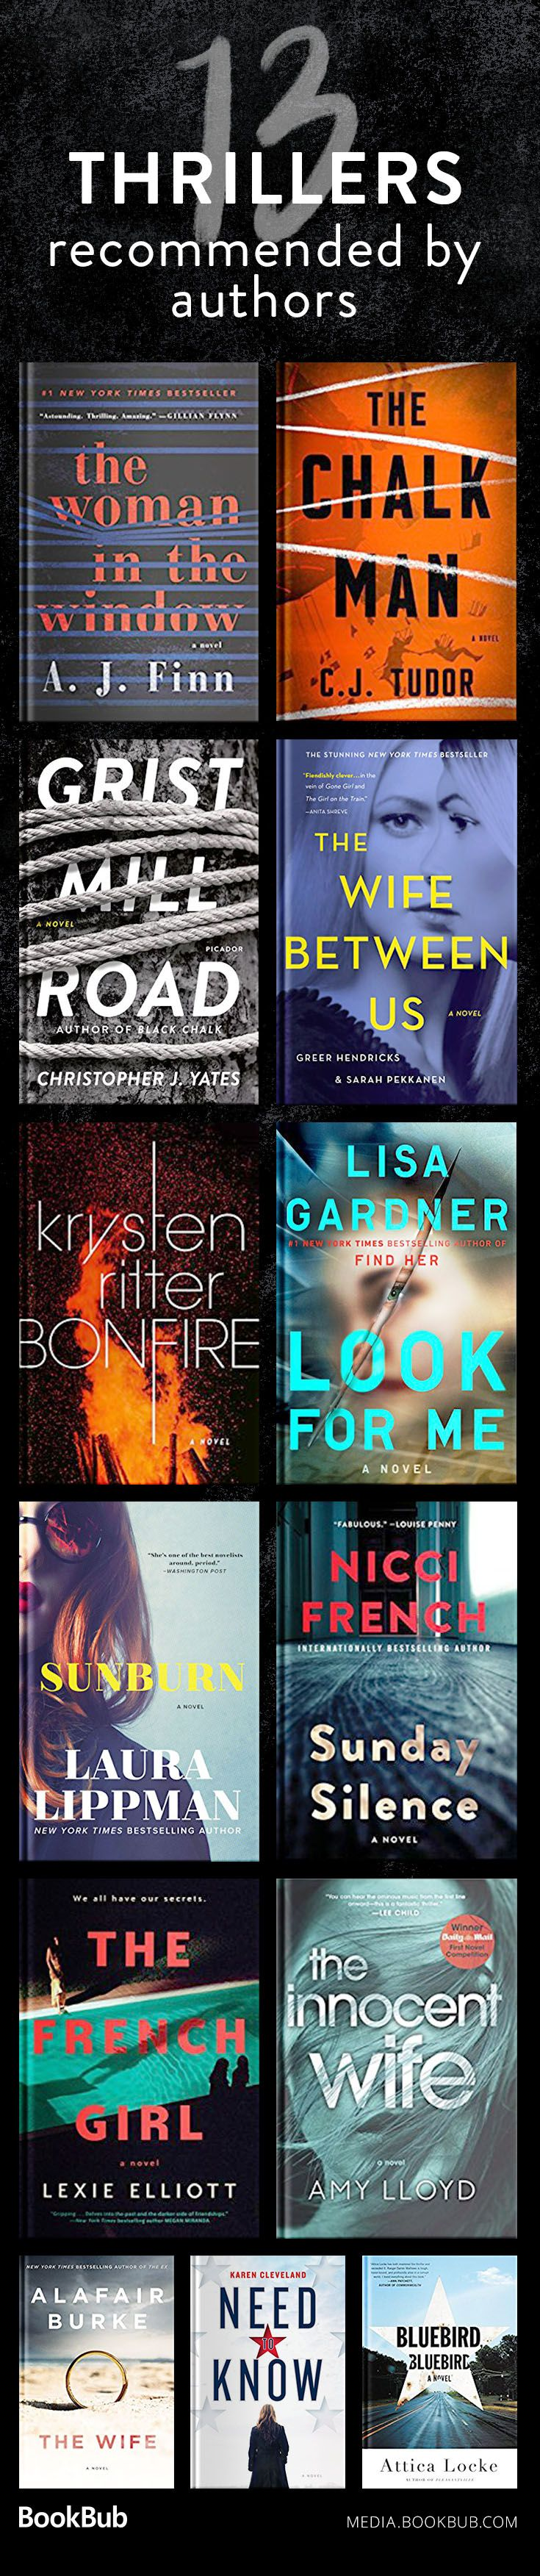 13 thriller books recommended by authors. If you're looking for books like Gone Girl, these twisty, suspense books are worth picking up!